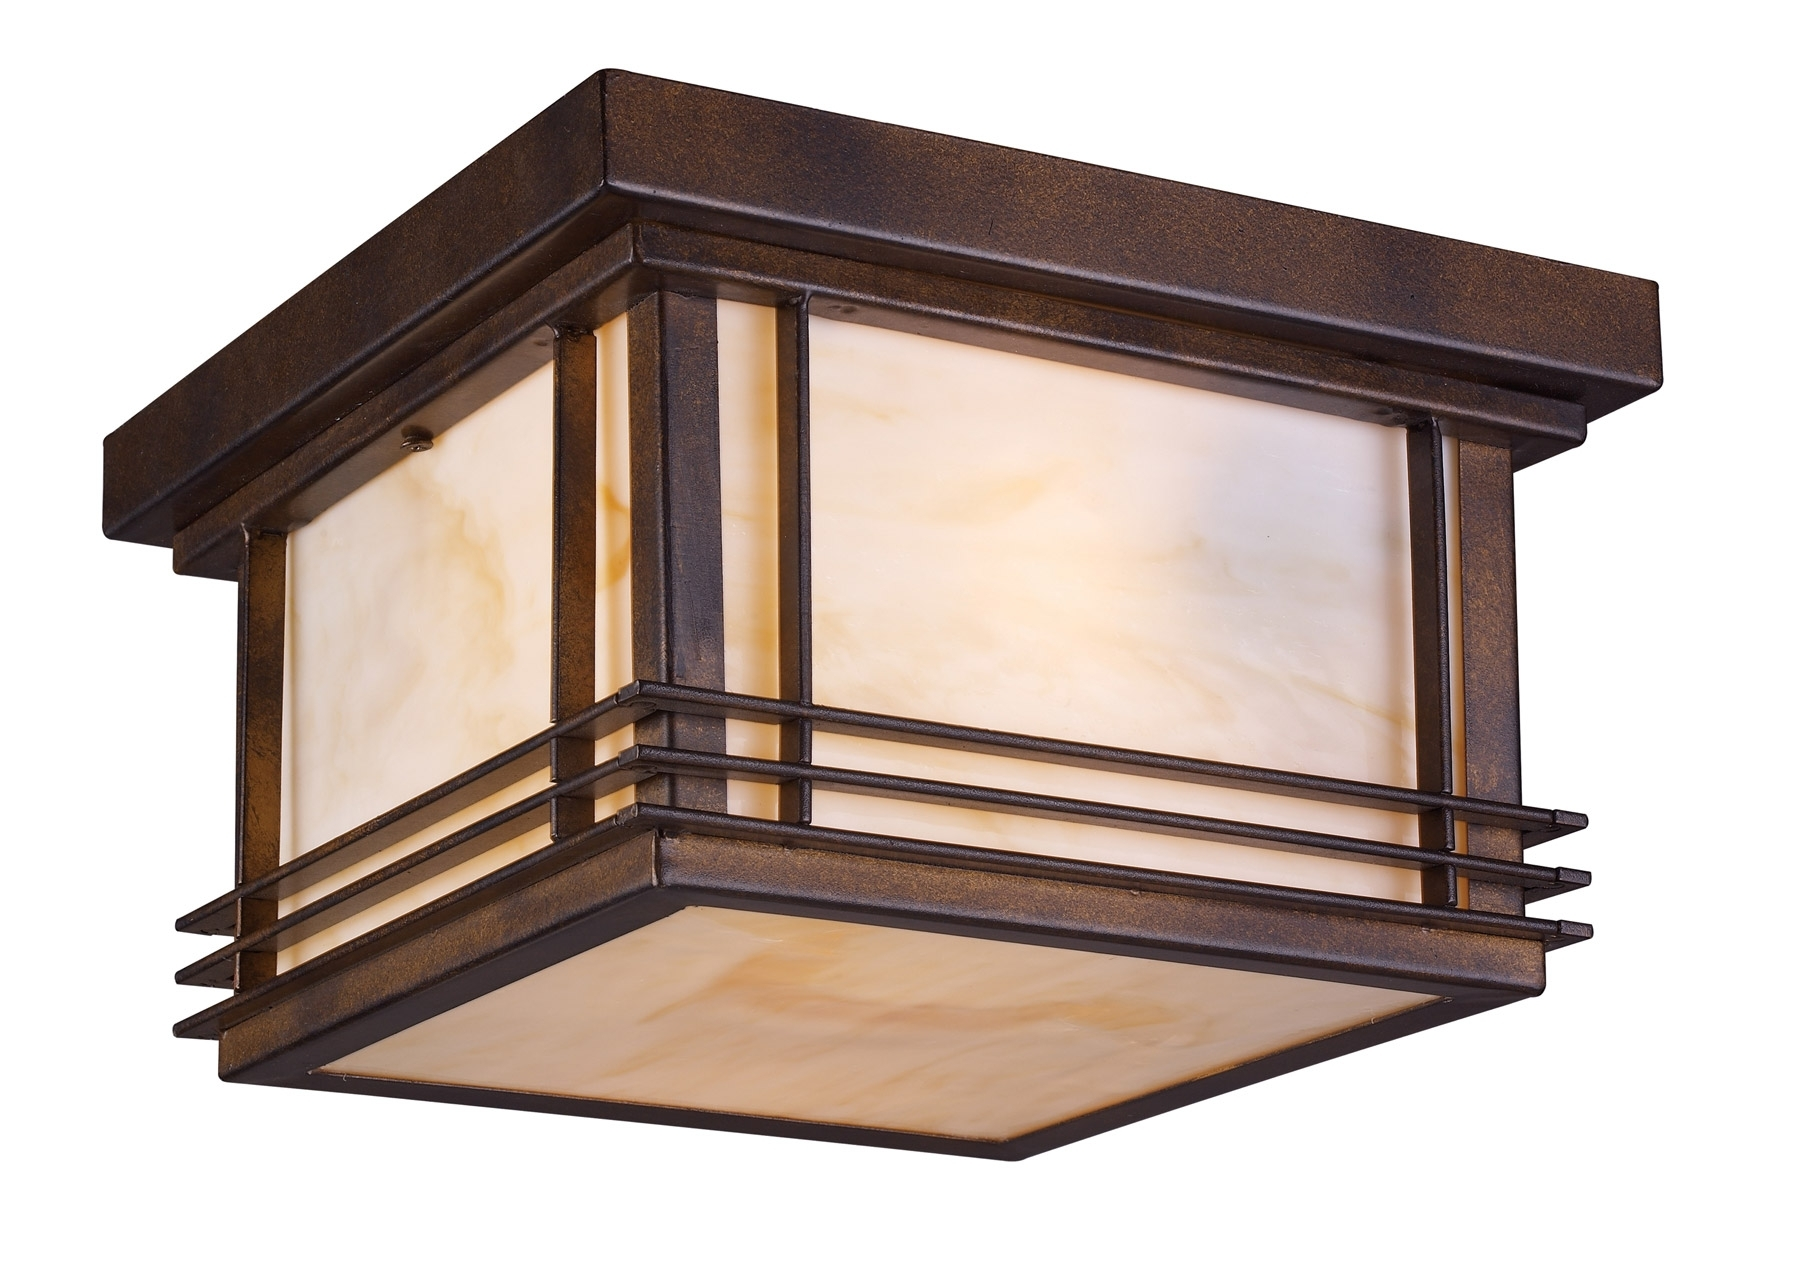 Preferred Outdoor Ceiling Lights For Porch Intended For Light : Antique Drum Outdoor Ceiling Lights For Porch Beautiful (View 9 of 20)